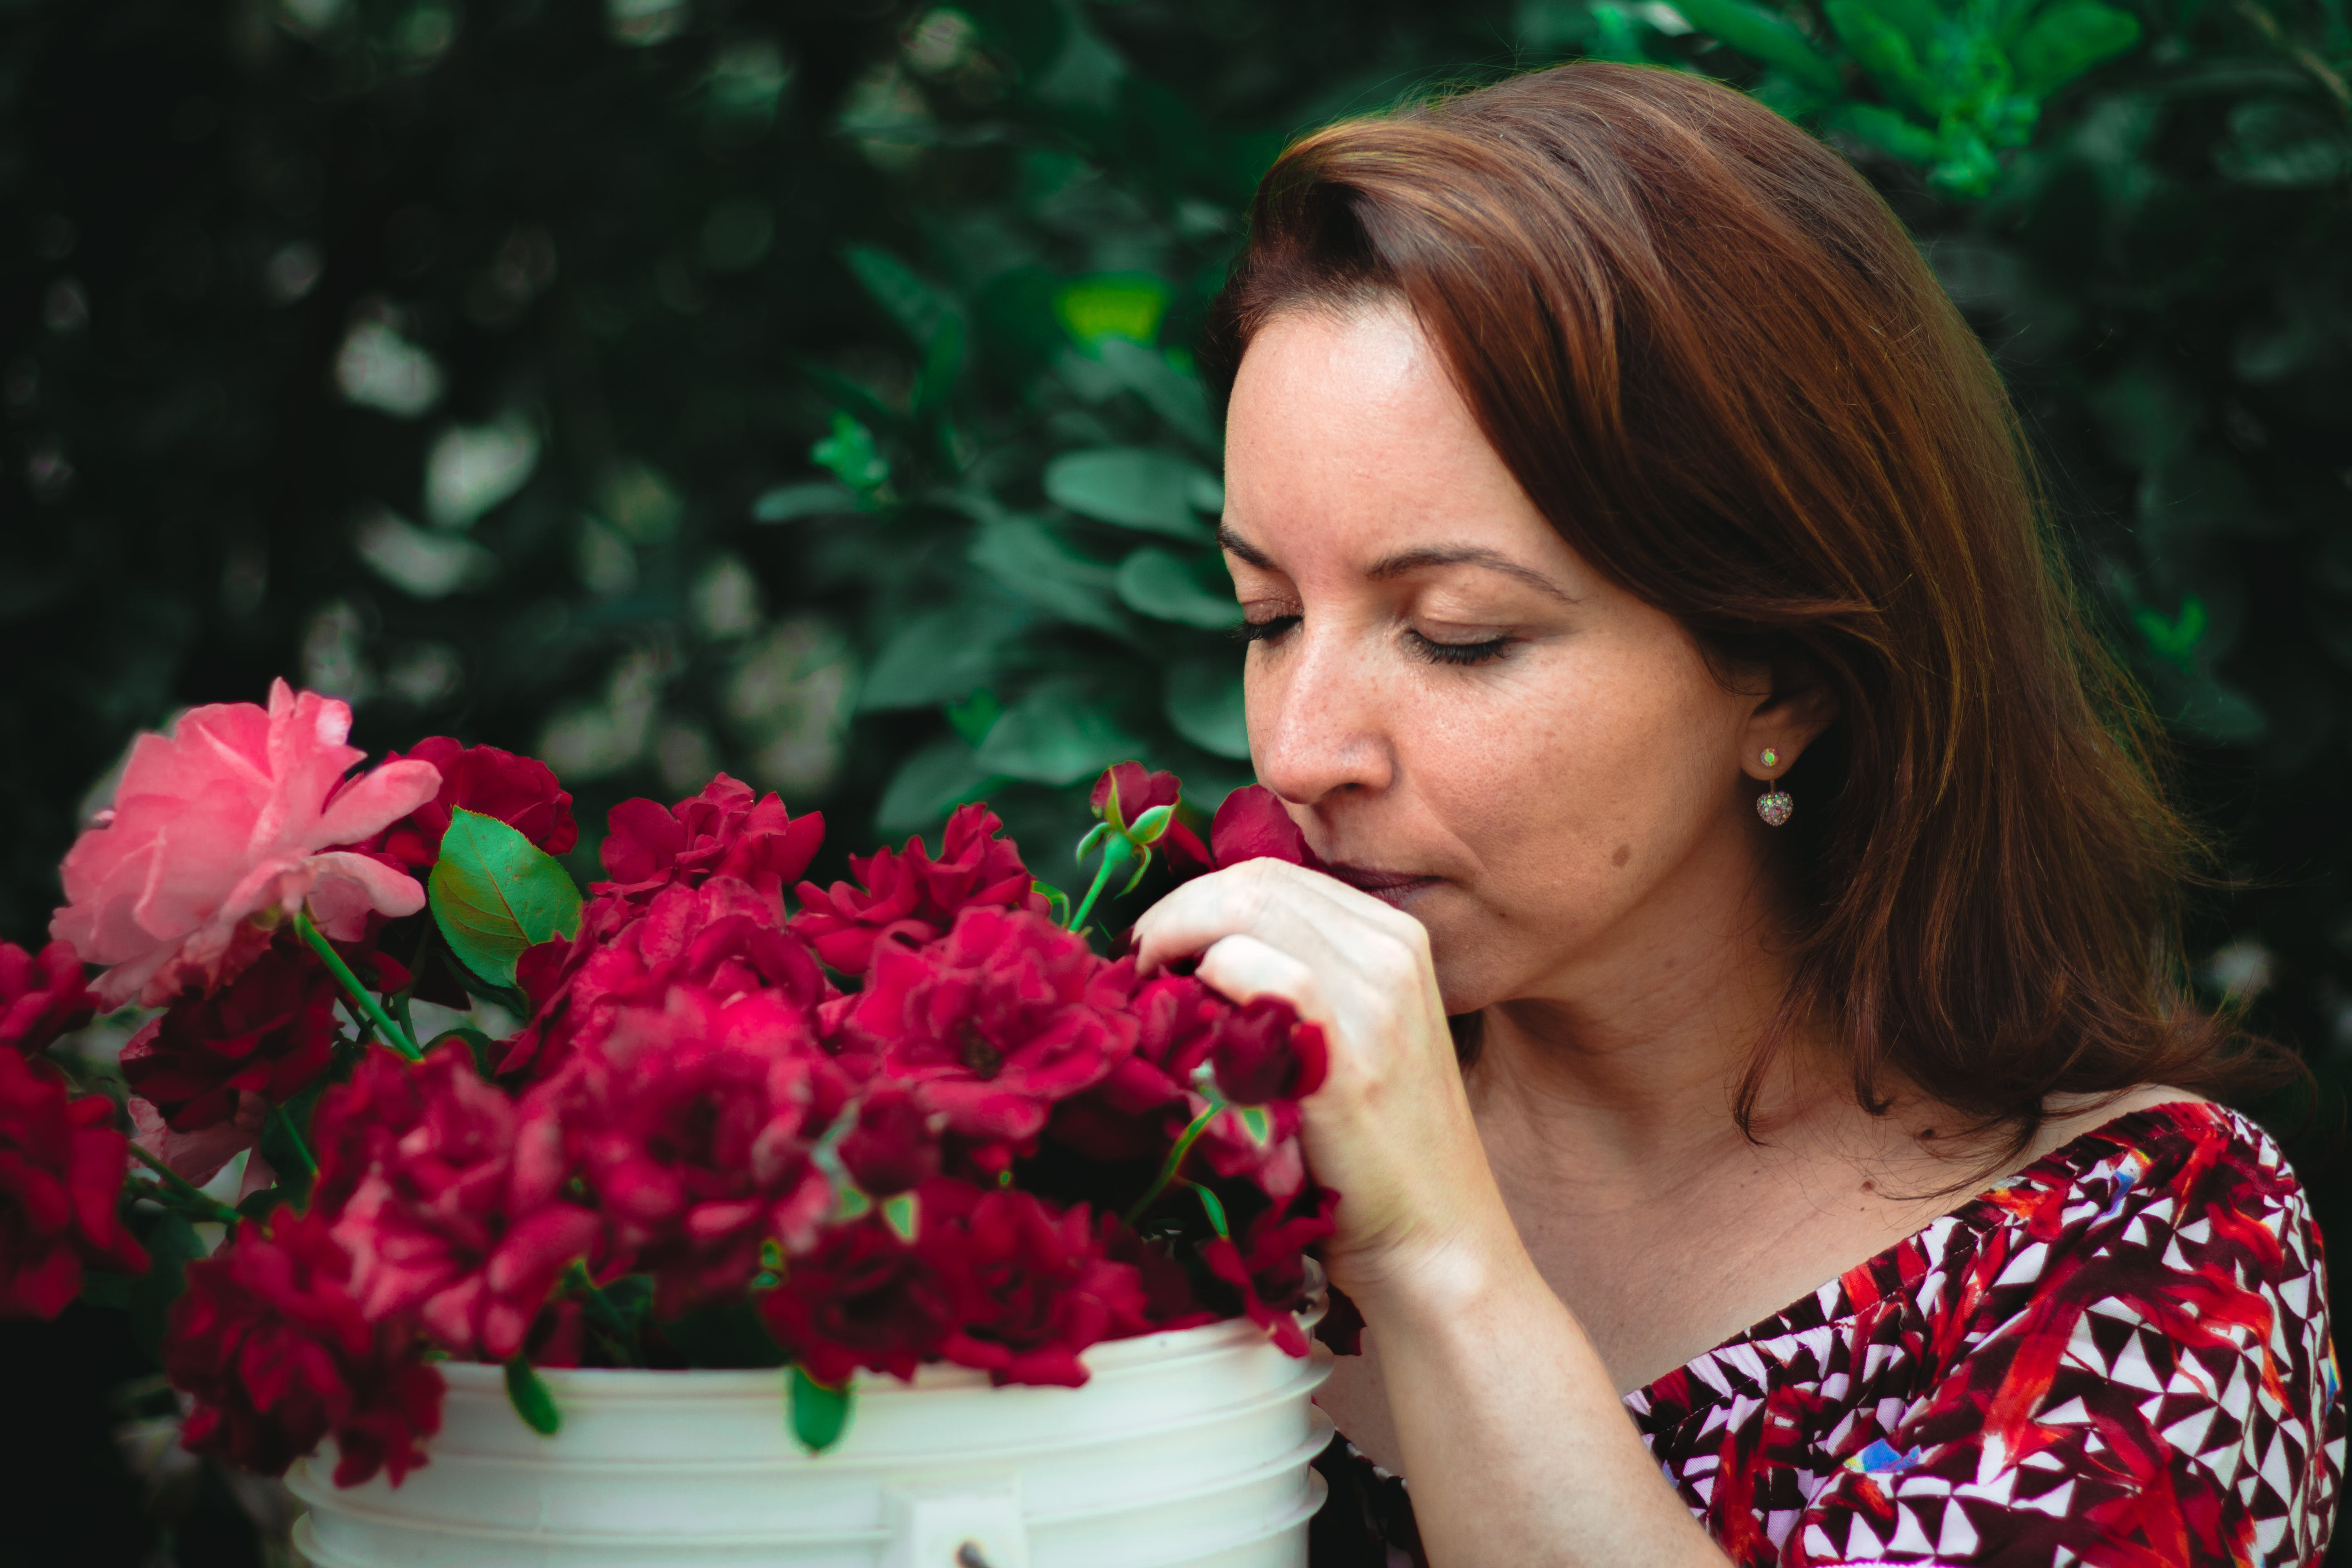 Free stock photo of flowers, smelling, woman